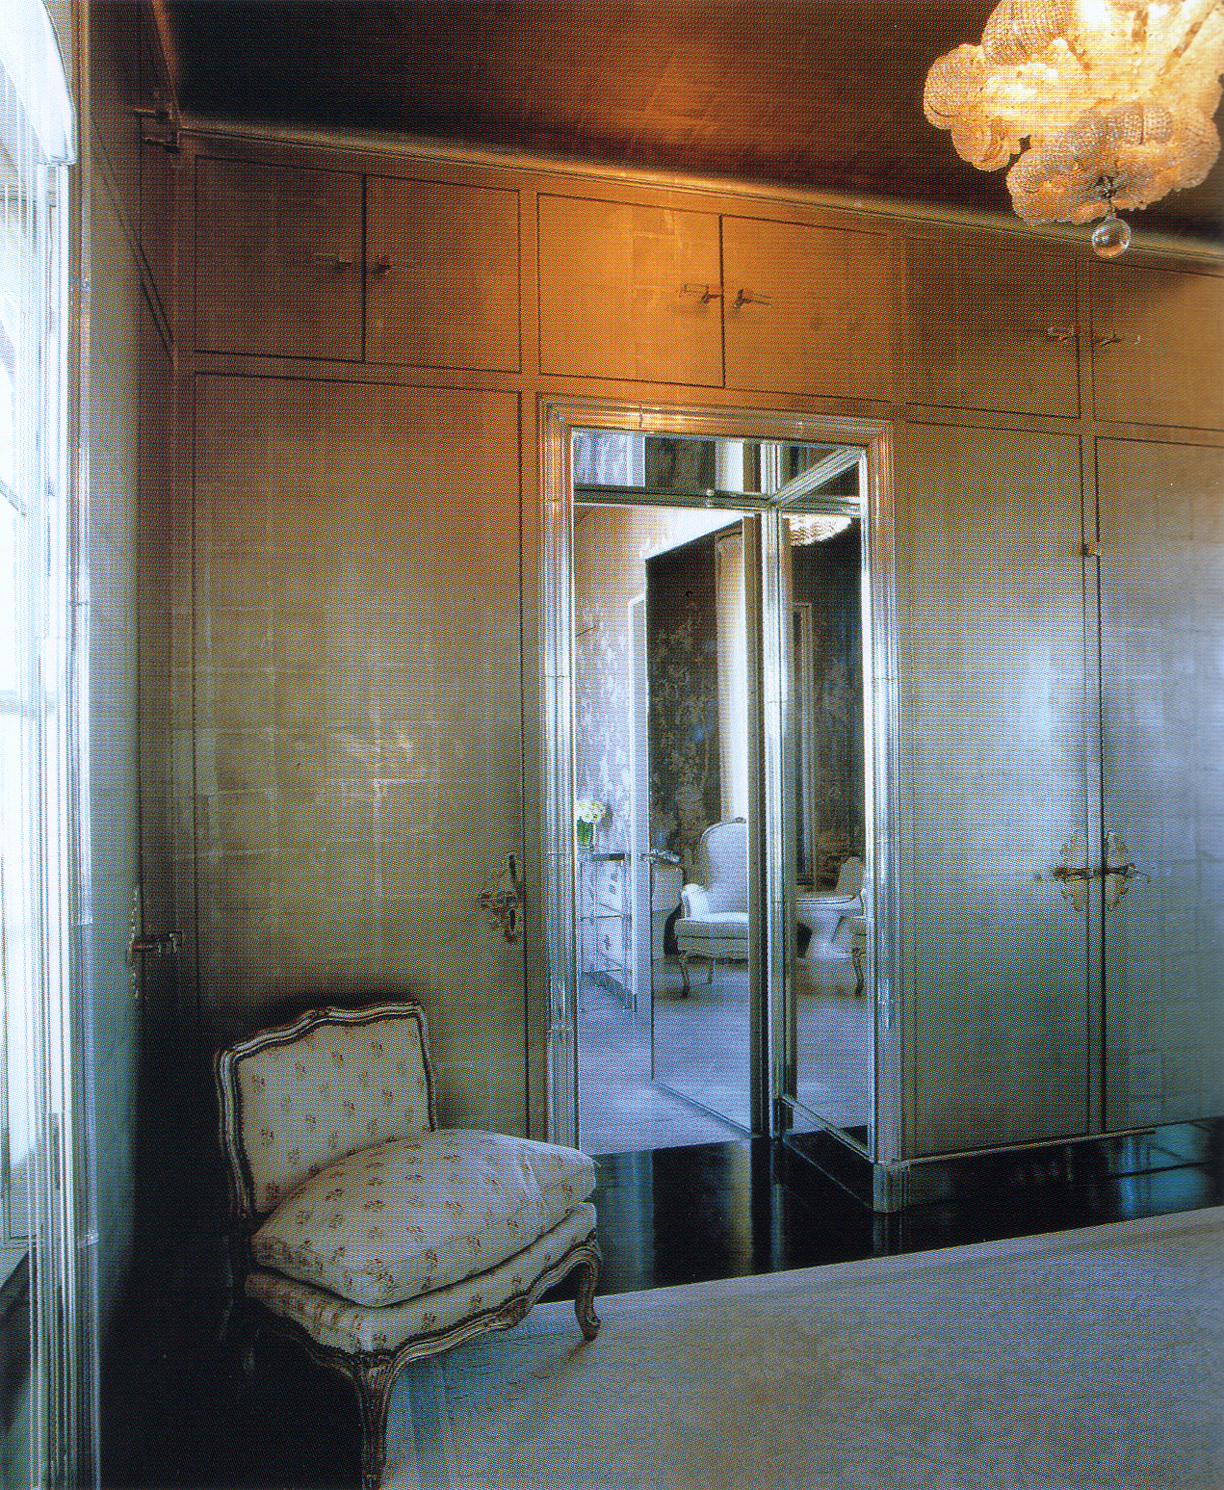 (above) The other end of the Zellerbach dressing room. The mirrored door and doorway lead to the bathroom. The pièce de résistance is the custom Venetian-glass chandelier in the form of a large flower head. Details, such as the closet doors' hardware, fascinate me. I wonder if the escutcheon plates were custom ordered, but the book does not give us the answer.